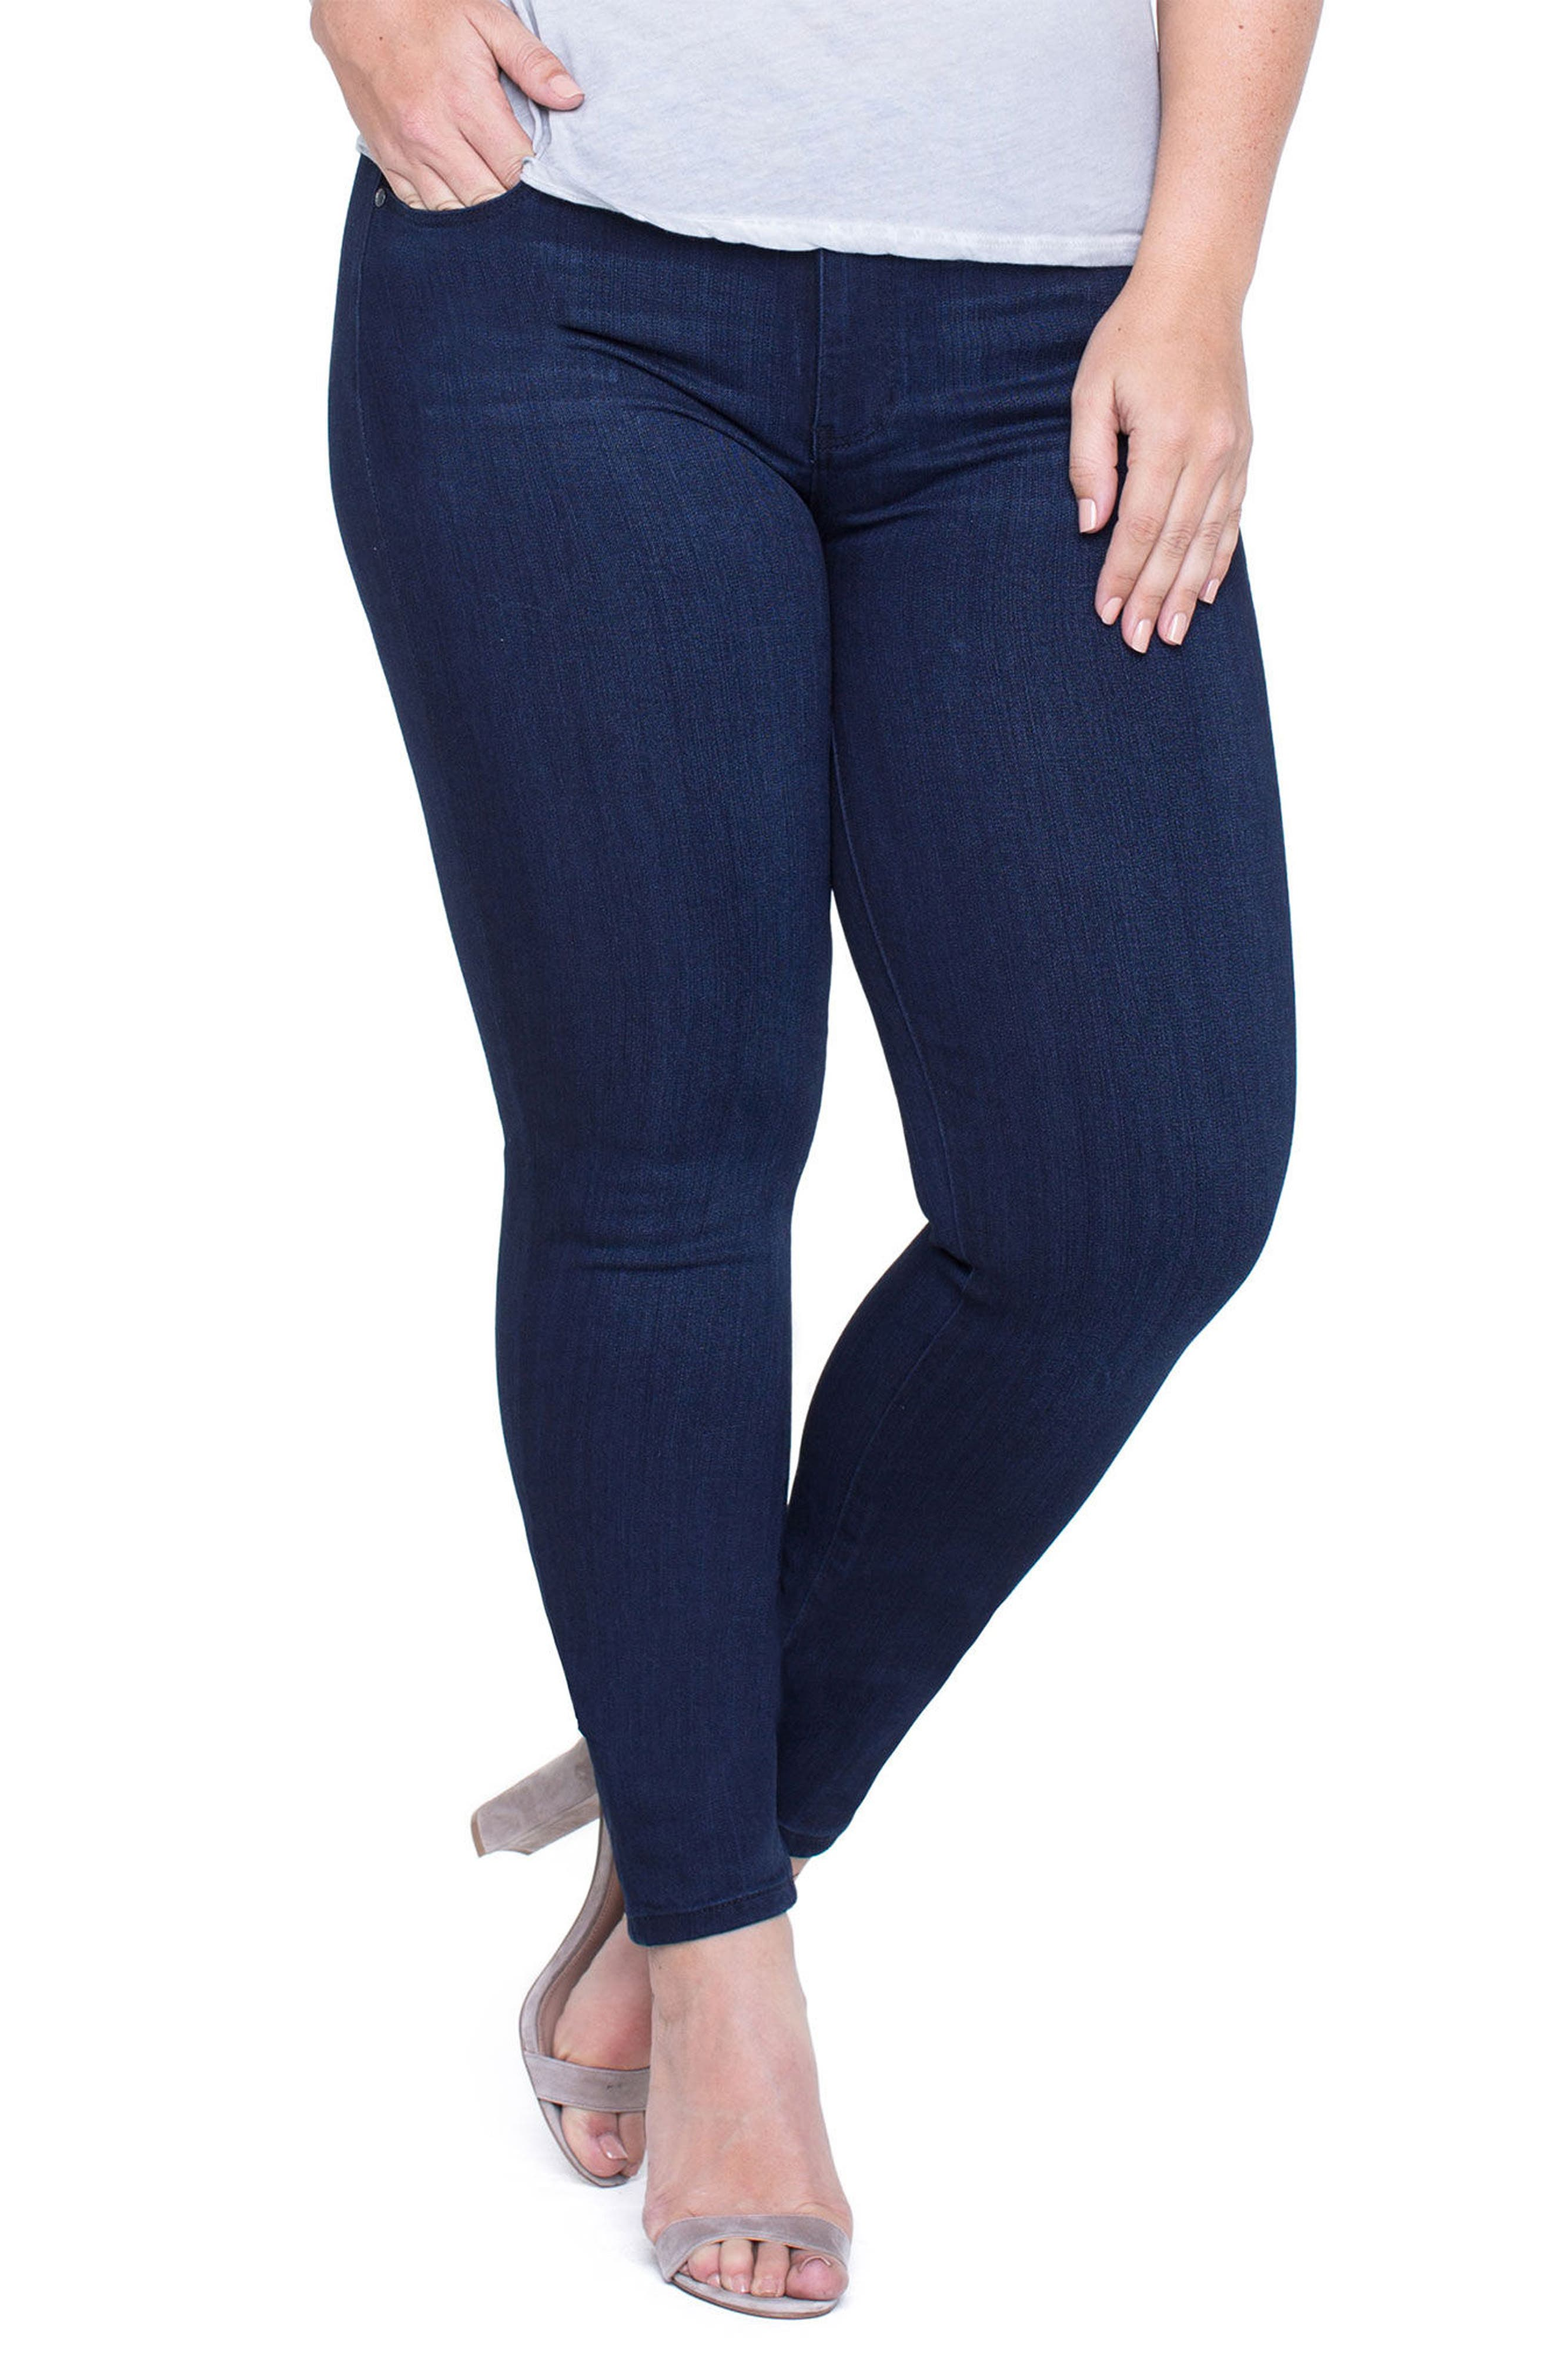 Abby Stretch Skinny Jeans,                             Main thumbnail 1, color,                             Stone Wash